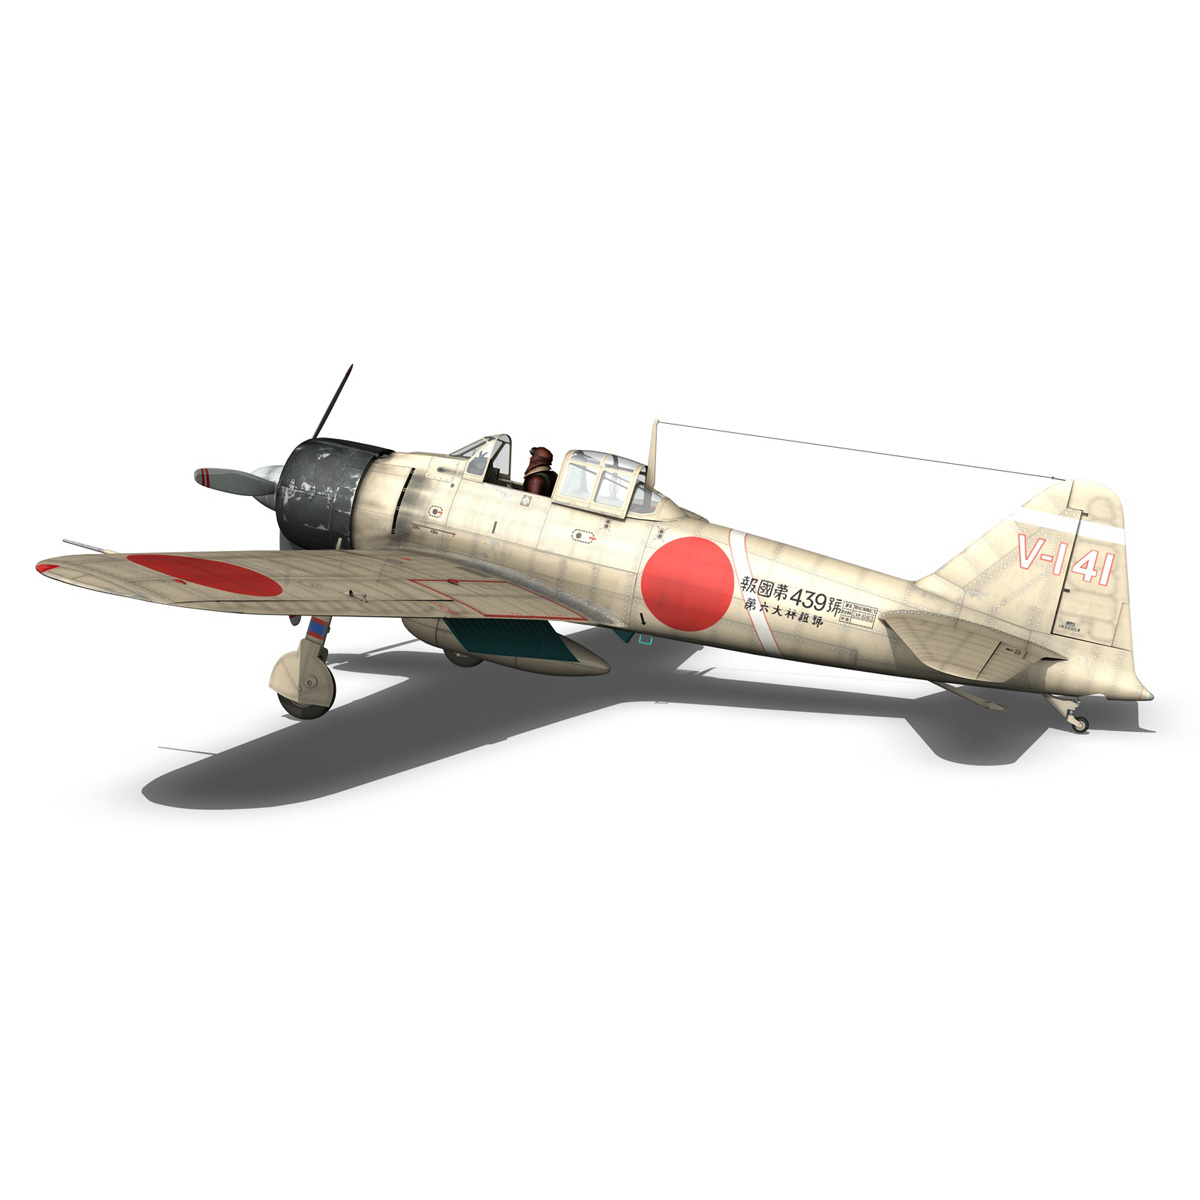 mitsubishi a6m2 zero – tainan air group 3d model fbx lwo obj 272718